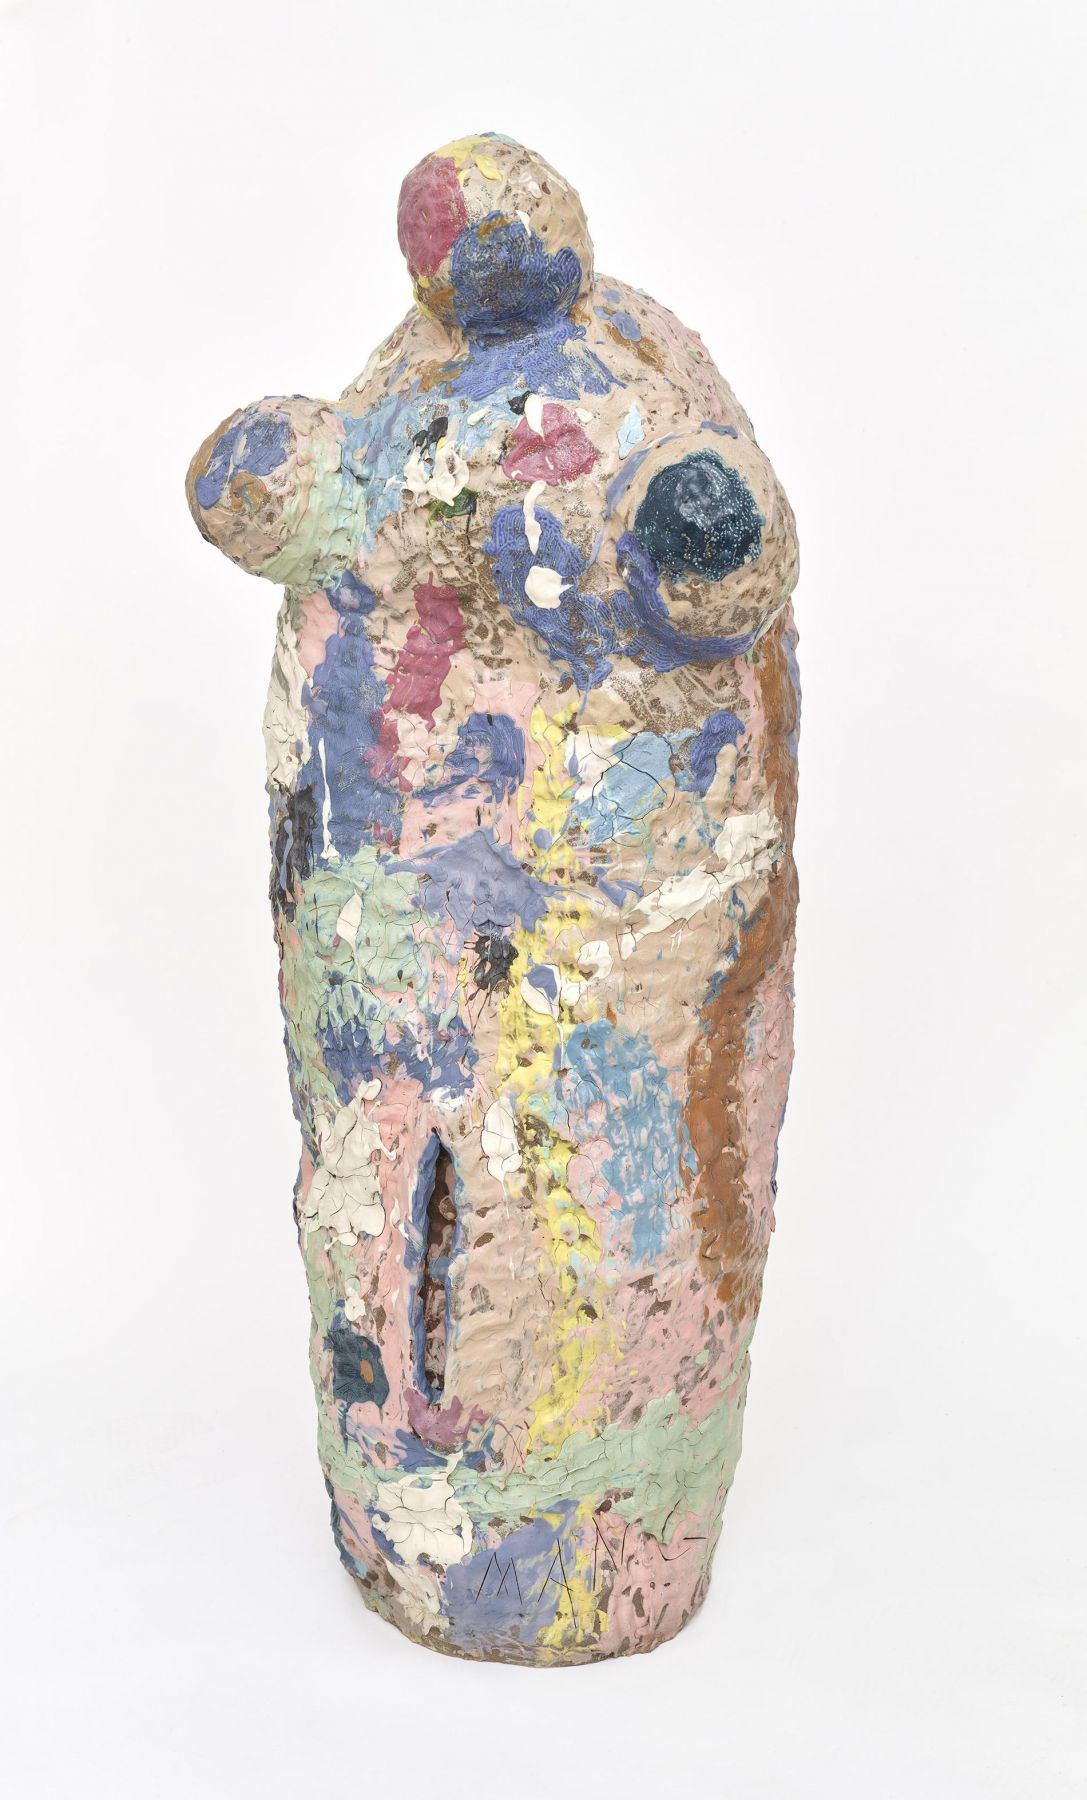 , Girl With Ponytail Femme, 1986-87, Stoneware and colored slips, 51 1/2 x 20 1/4 x 17 1/4 in.